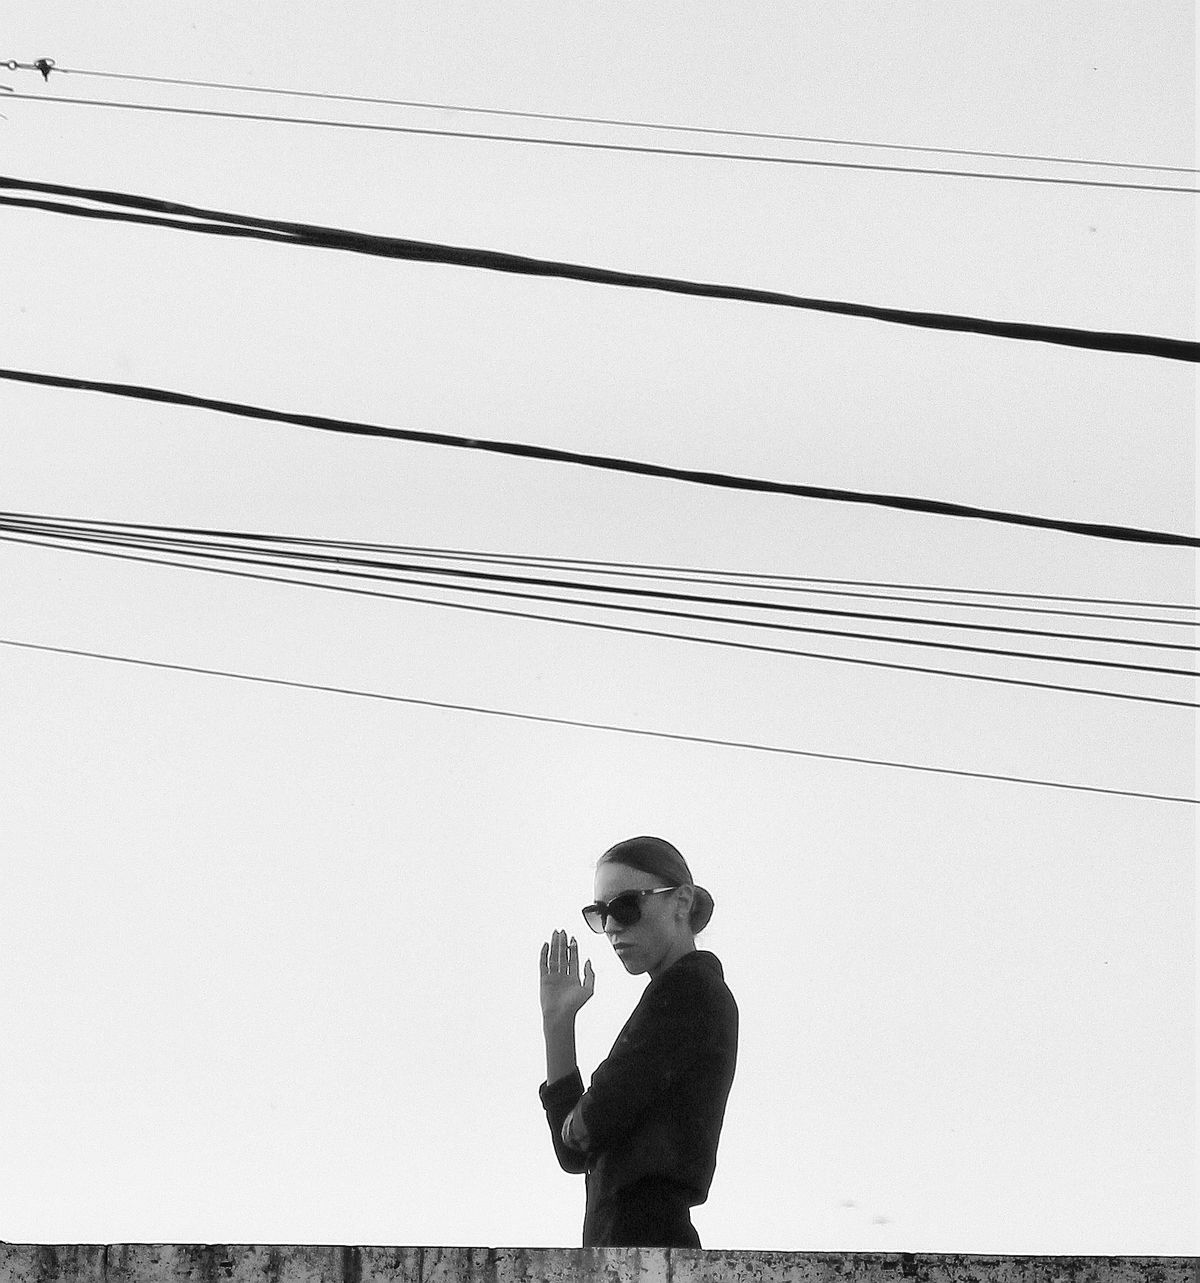 To ask or search, I blame thee not; for Heaven Is as the book of God before thee set Artistic Photo Black And White Cable Expression Fine Art Photography Lifestyles Minimal Composition Minimalism Minimalism_bw One Person Outdoor Photography Outdoors People Portrait Real People Silhouette Sky Streetphotography Urban Young Women